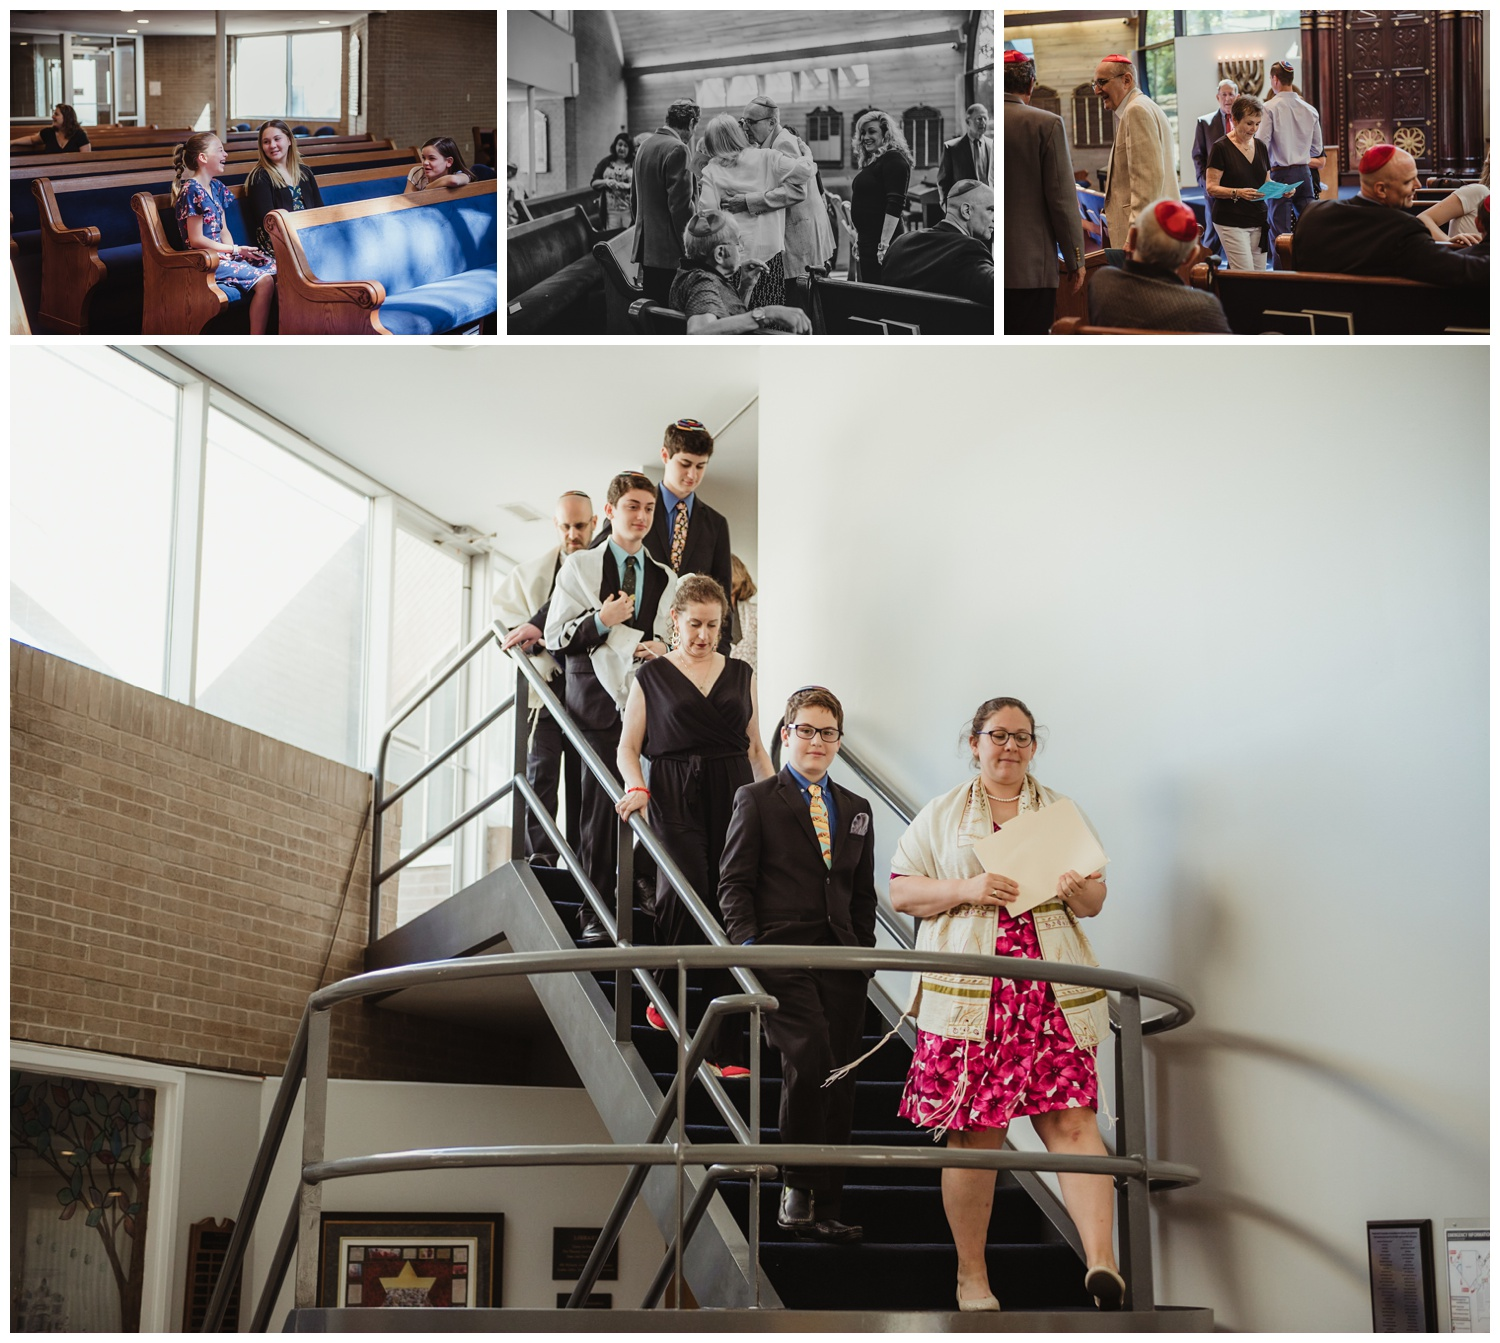 Family and friends in the sanctuary before the bar mitzvah ceremony at Temple Beth Or in Raleigh, NC, pictures by Rose Trail Images.